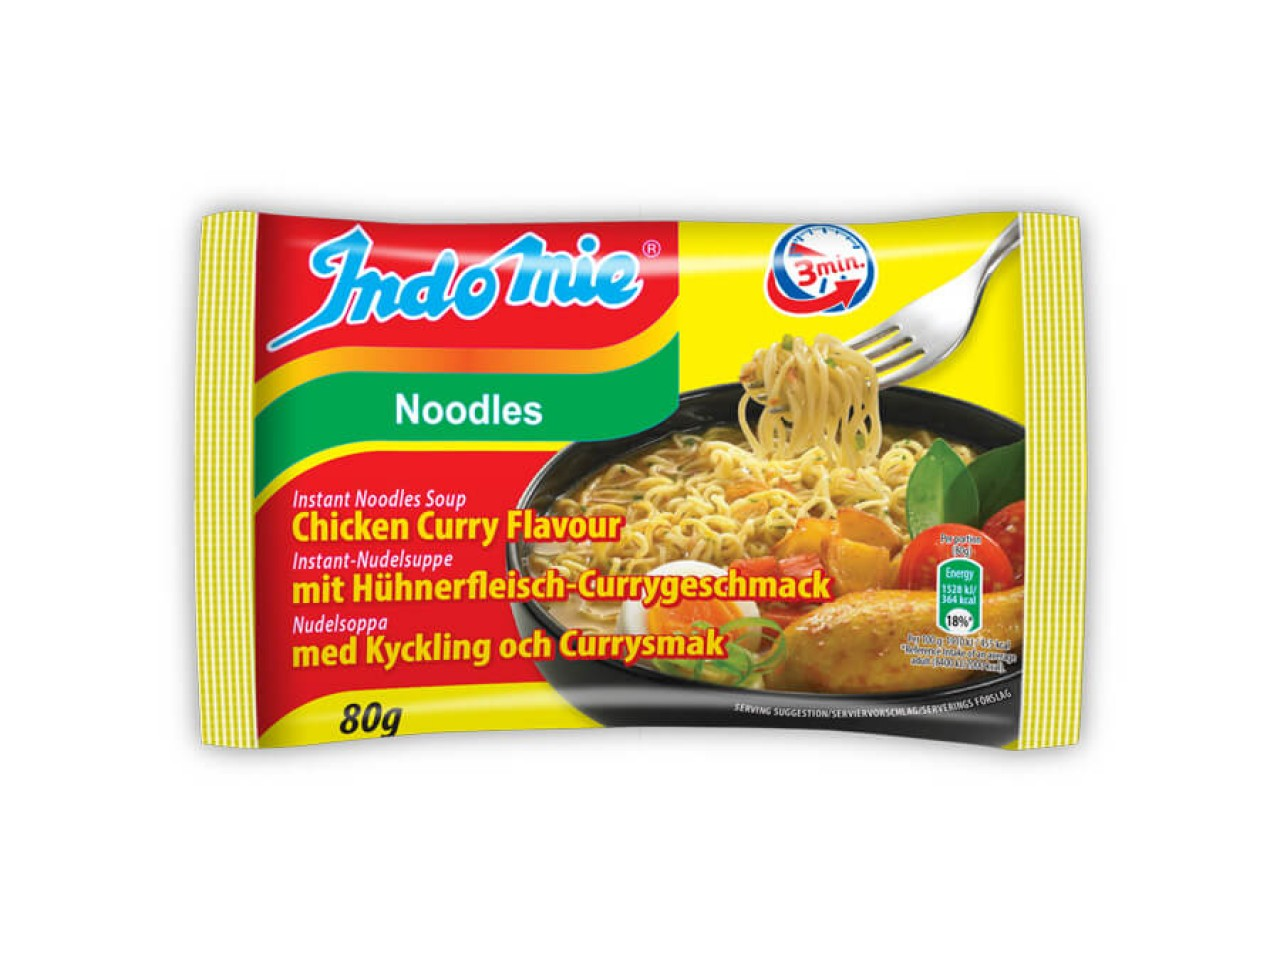 Indomie instant noodles soup Chicken-Curry flavour